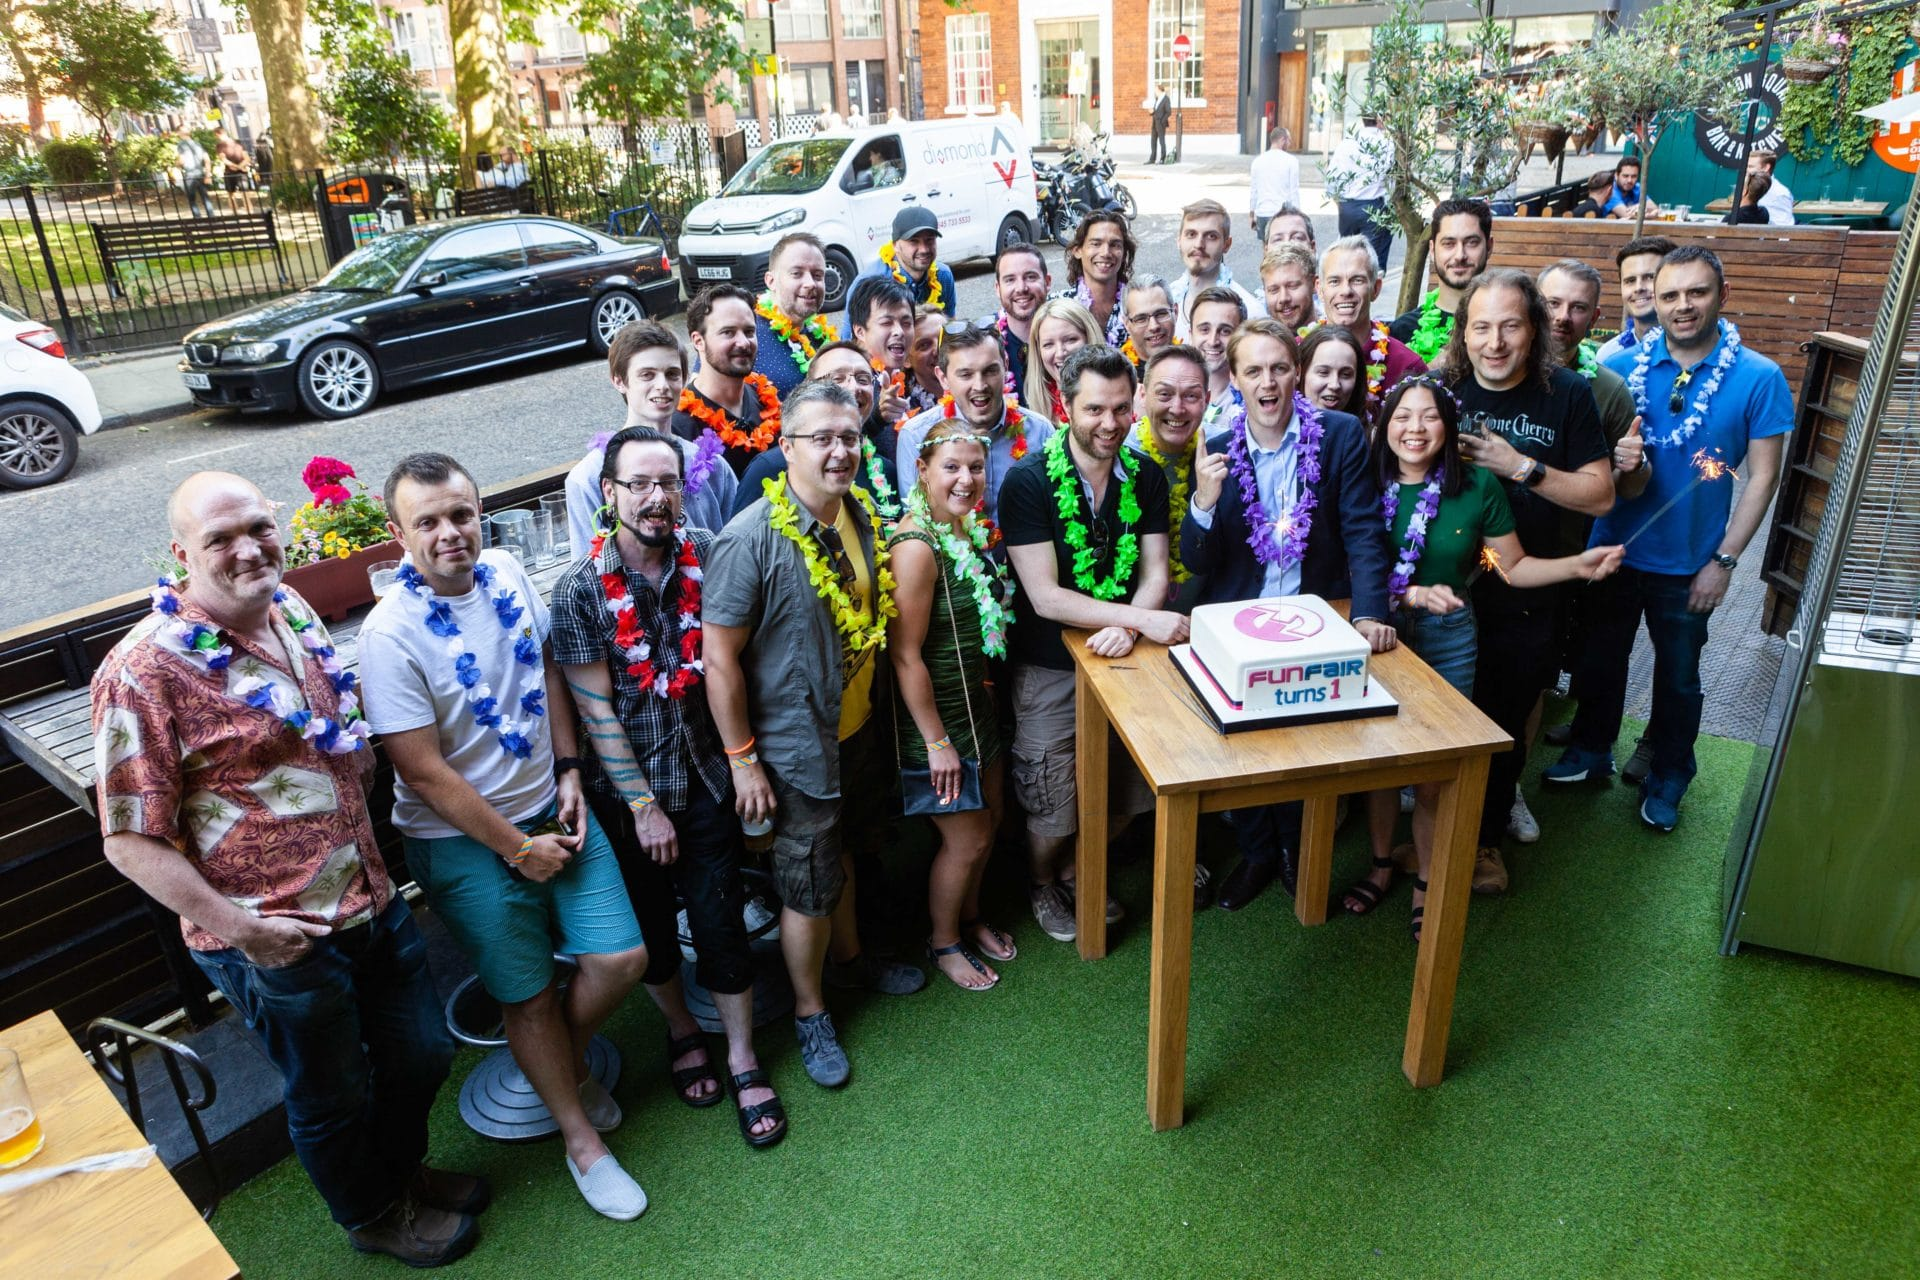 FunFair team photo at one year anniversary party